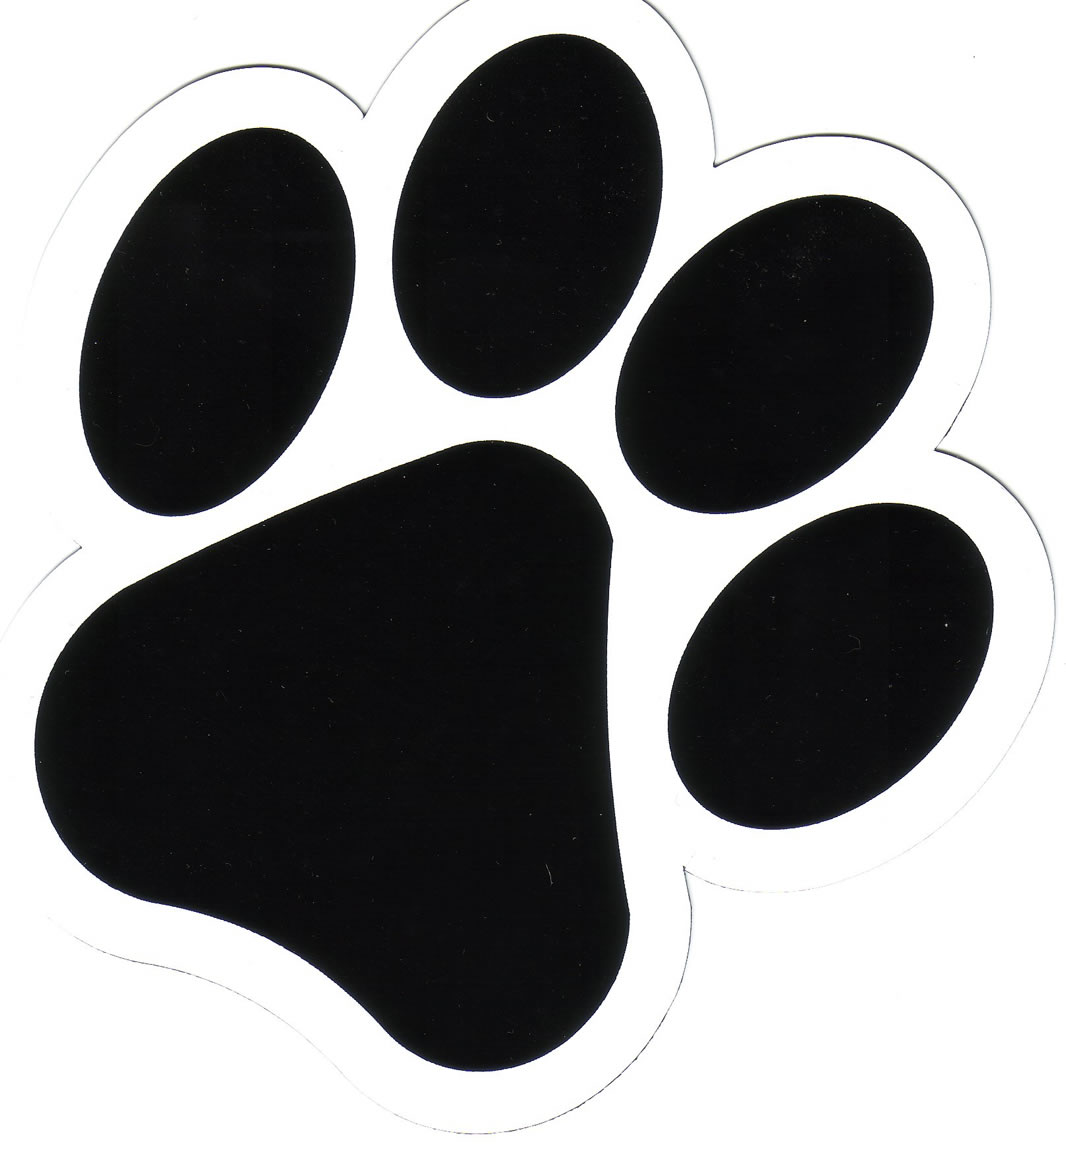 Free clipart image of a paw print. Dog download clip art